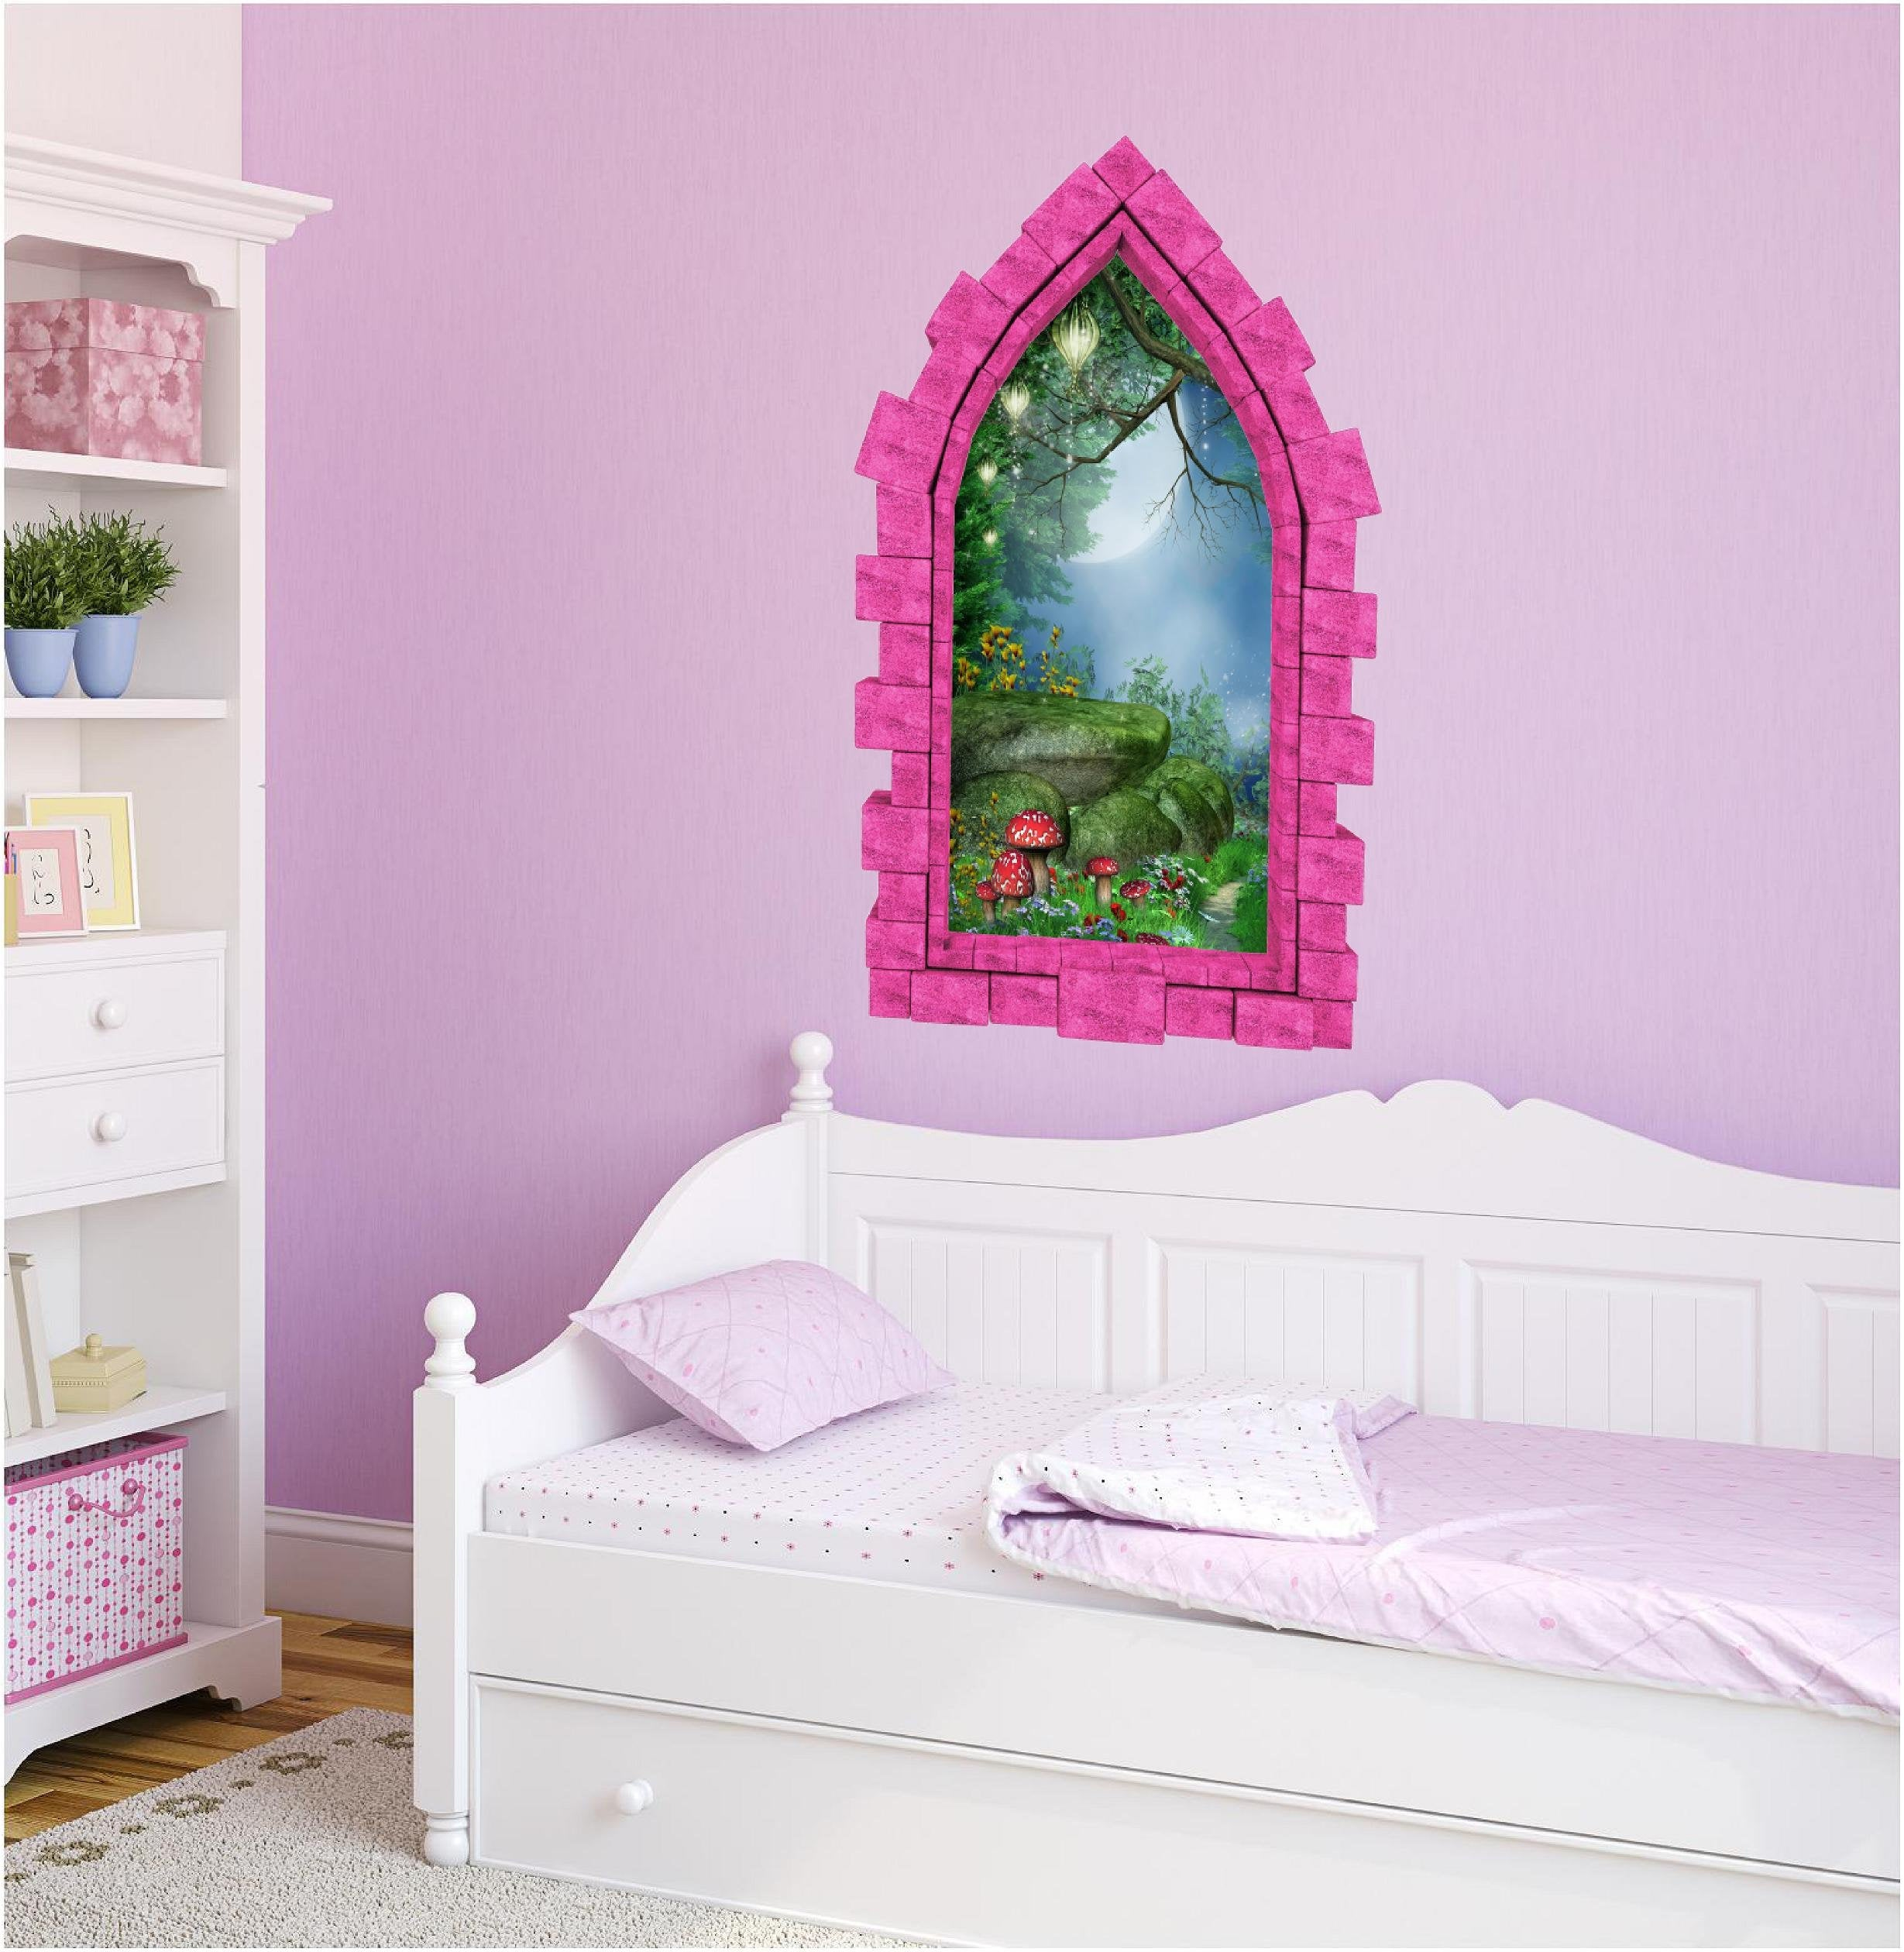 3D Castle Window Enchanted Lantern Forest Wall Decal Removable Fabric Vinyl Wall Sticker